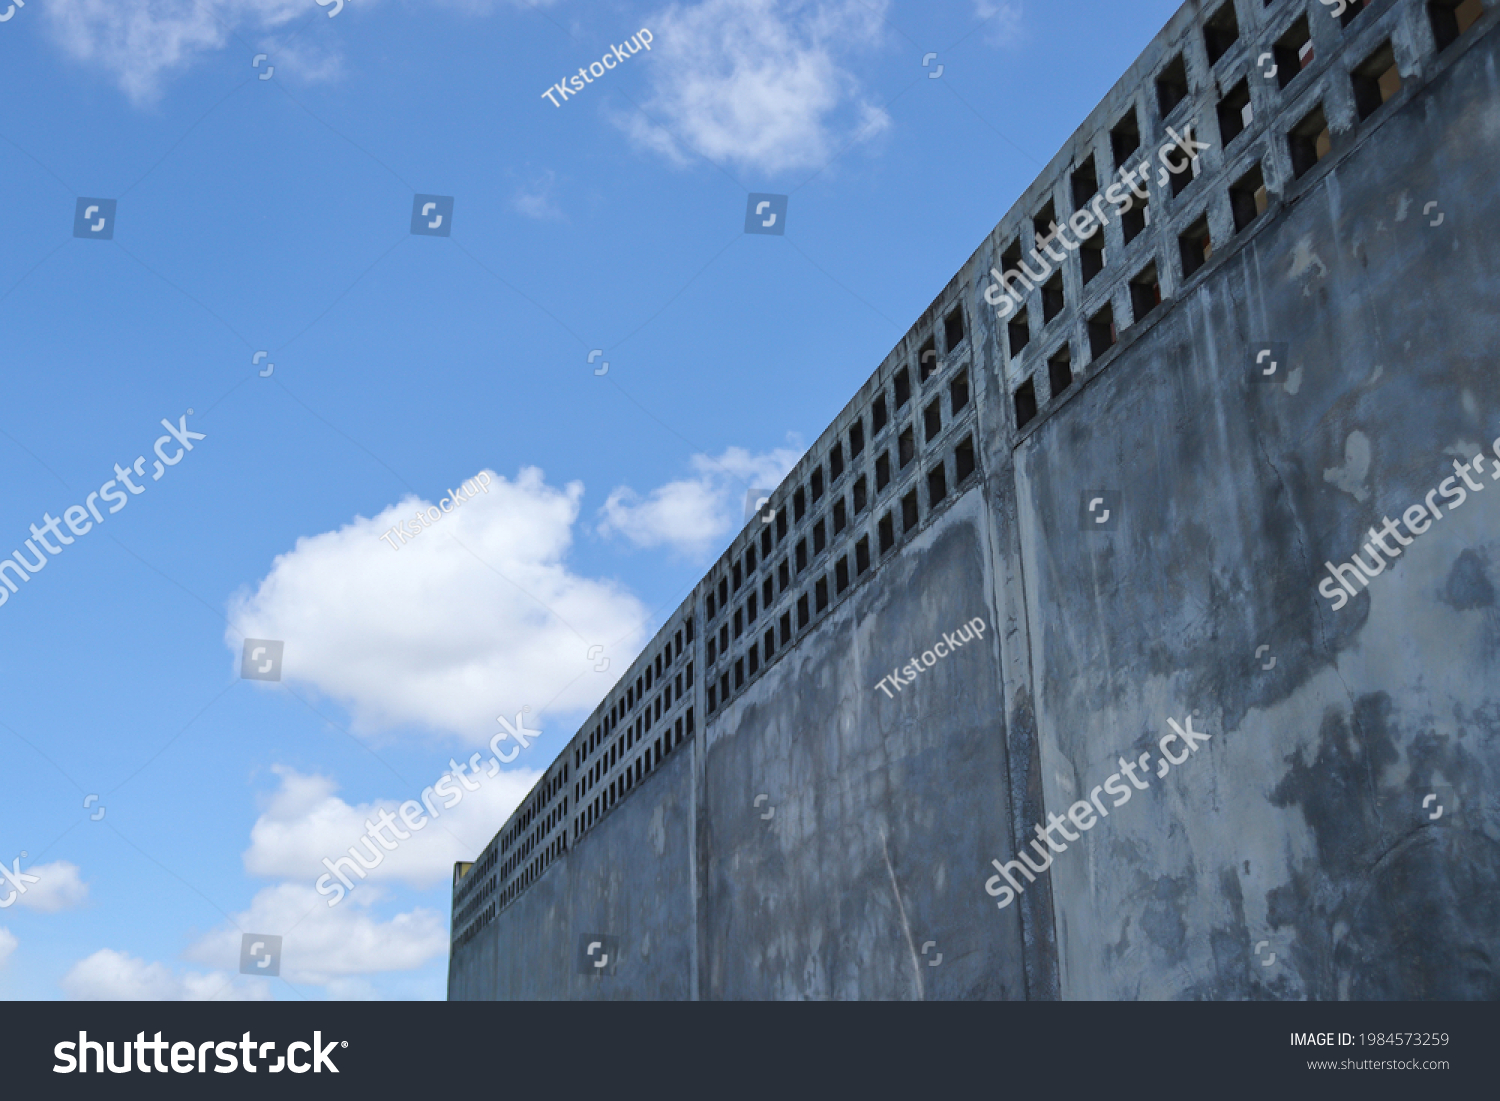 The high wall fence line is made of cement. with a background of sky and clouds during daytime. Construction of walls to create boundaries. #1984573259